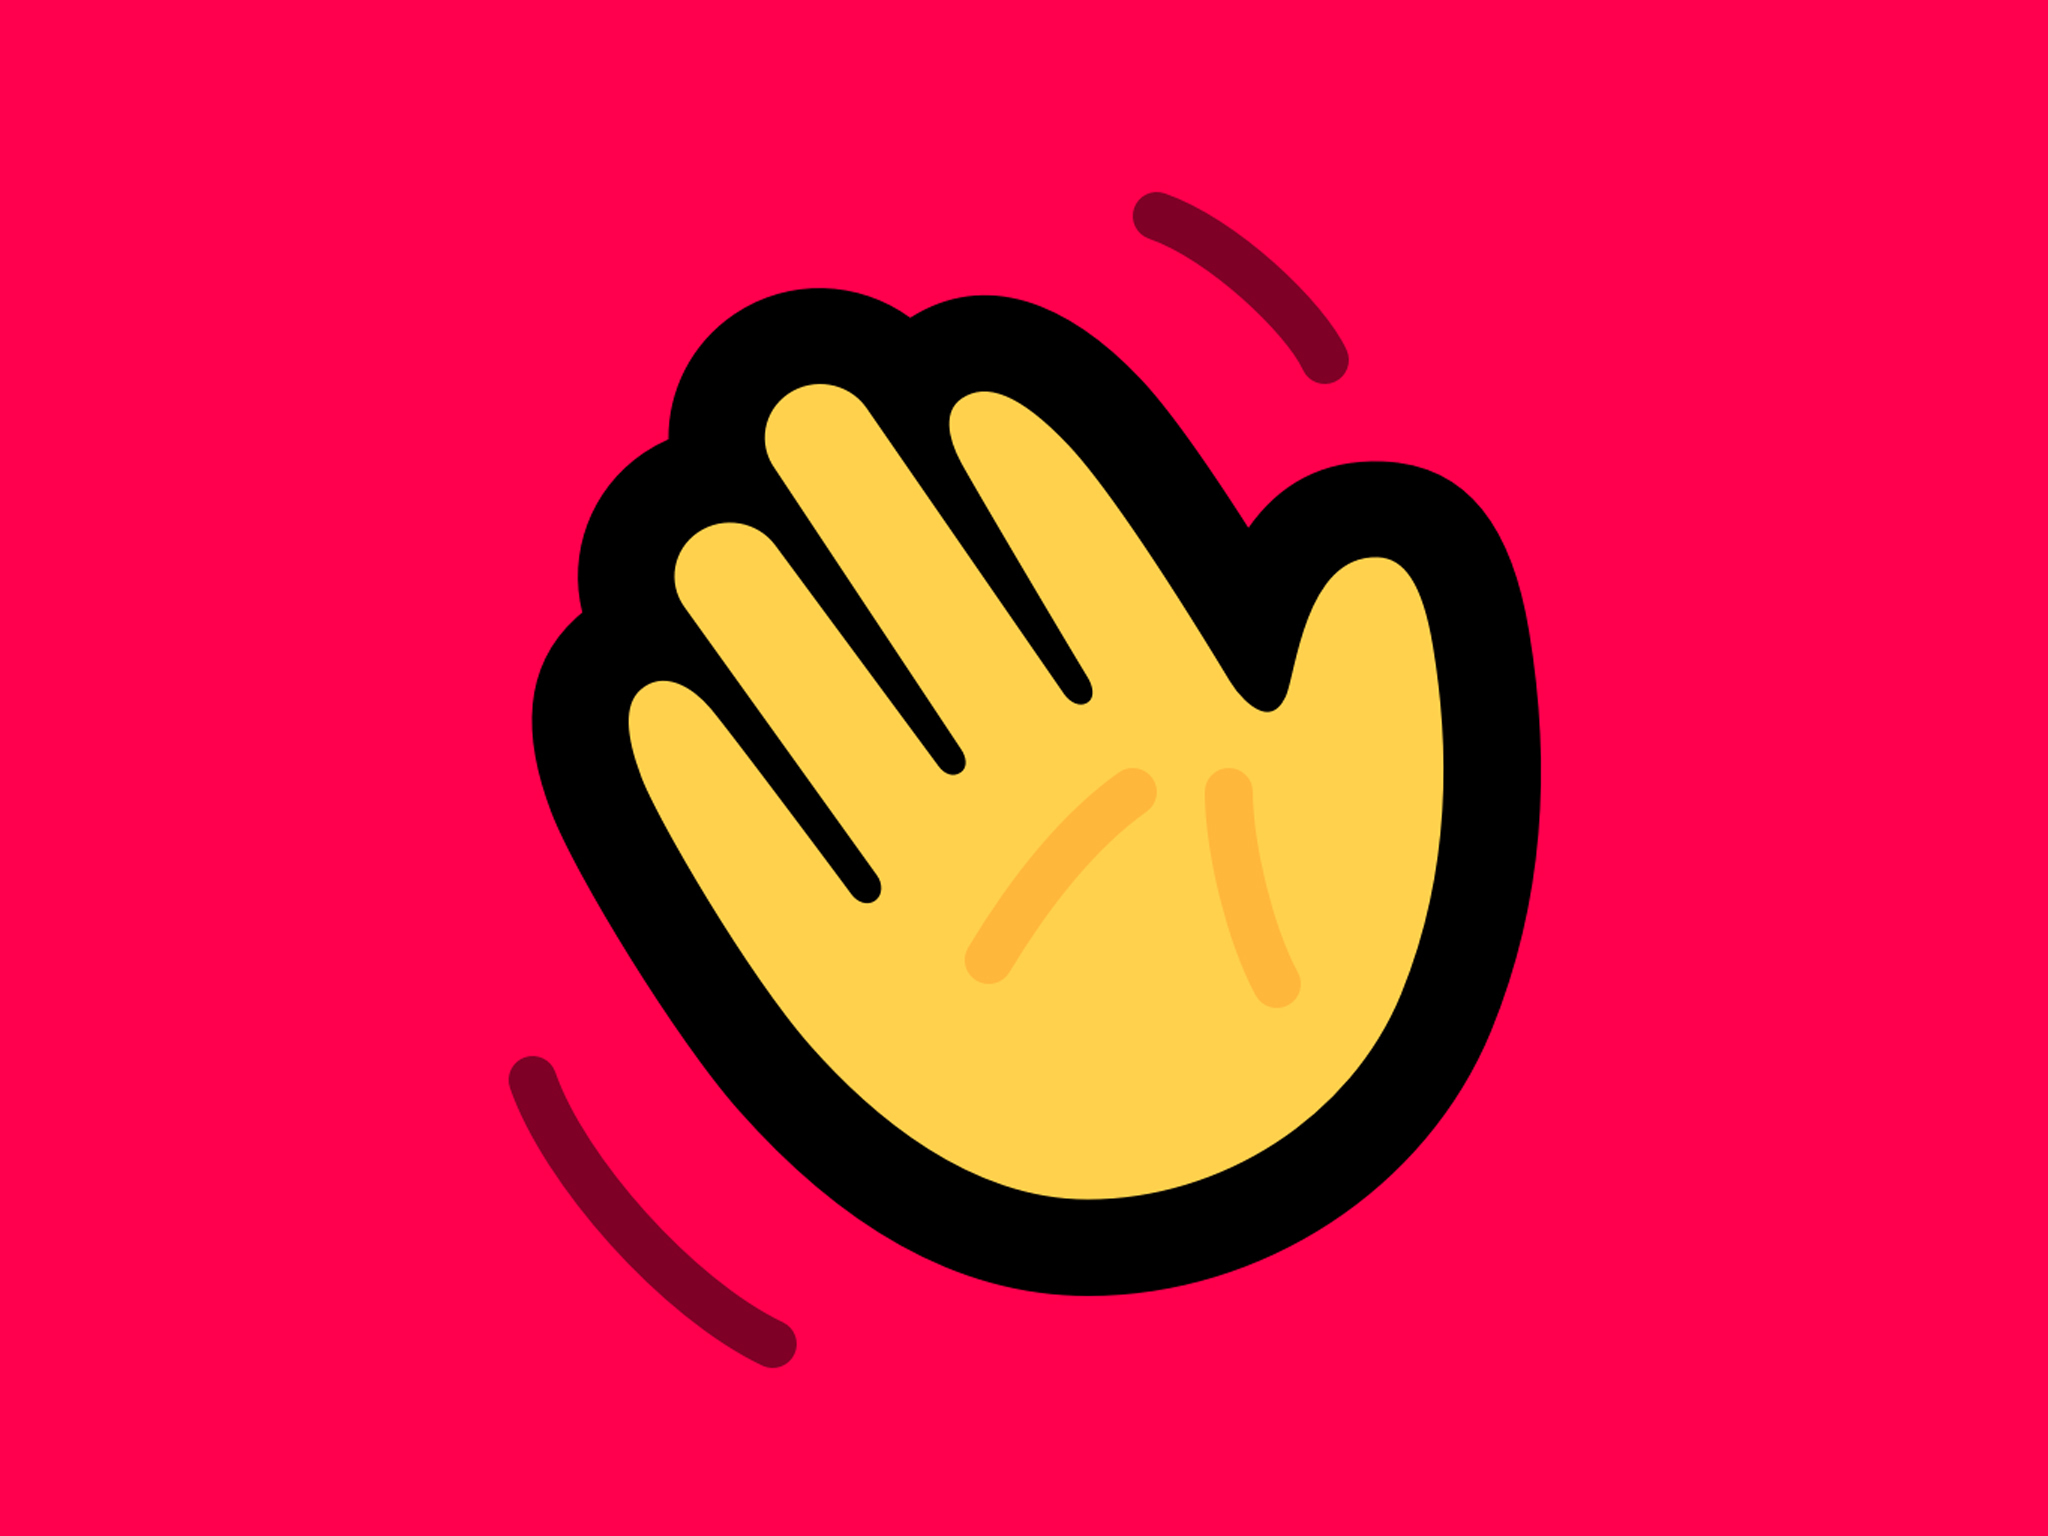 Houseparty app logo: a waving yellow hand